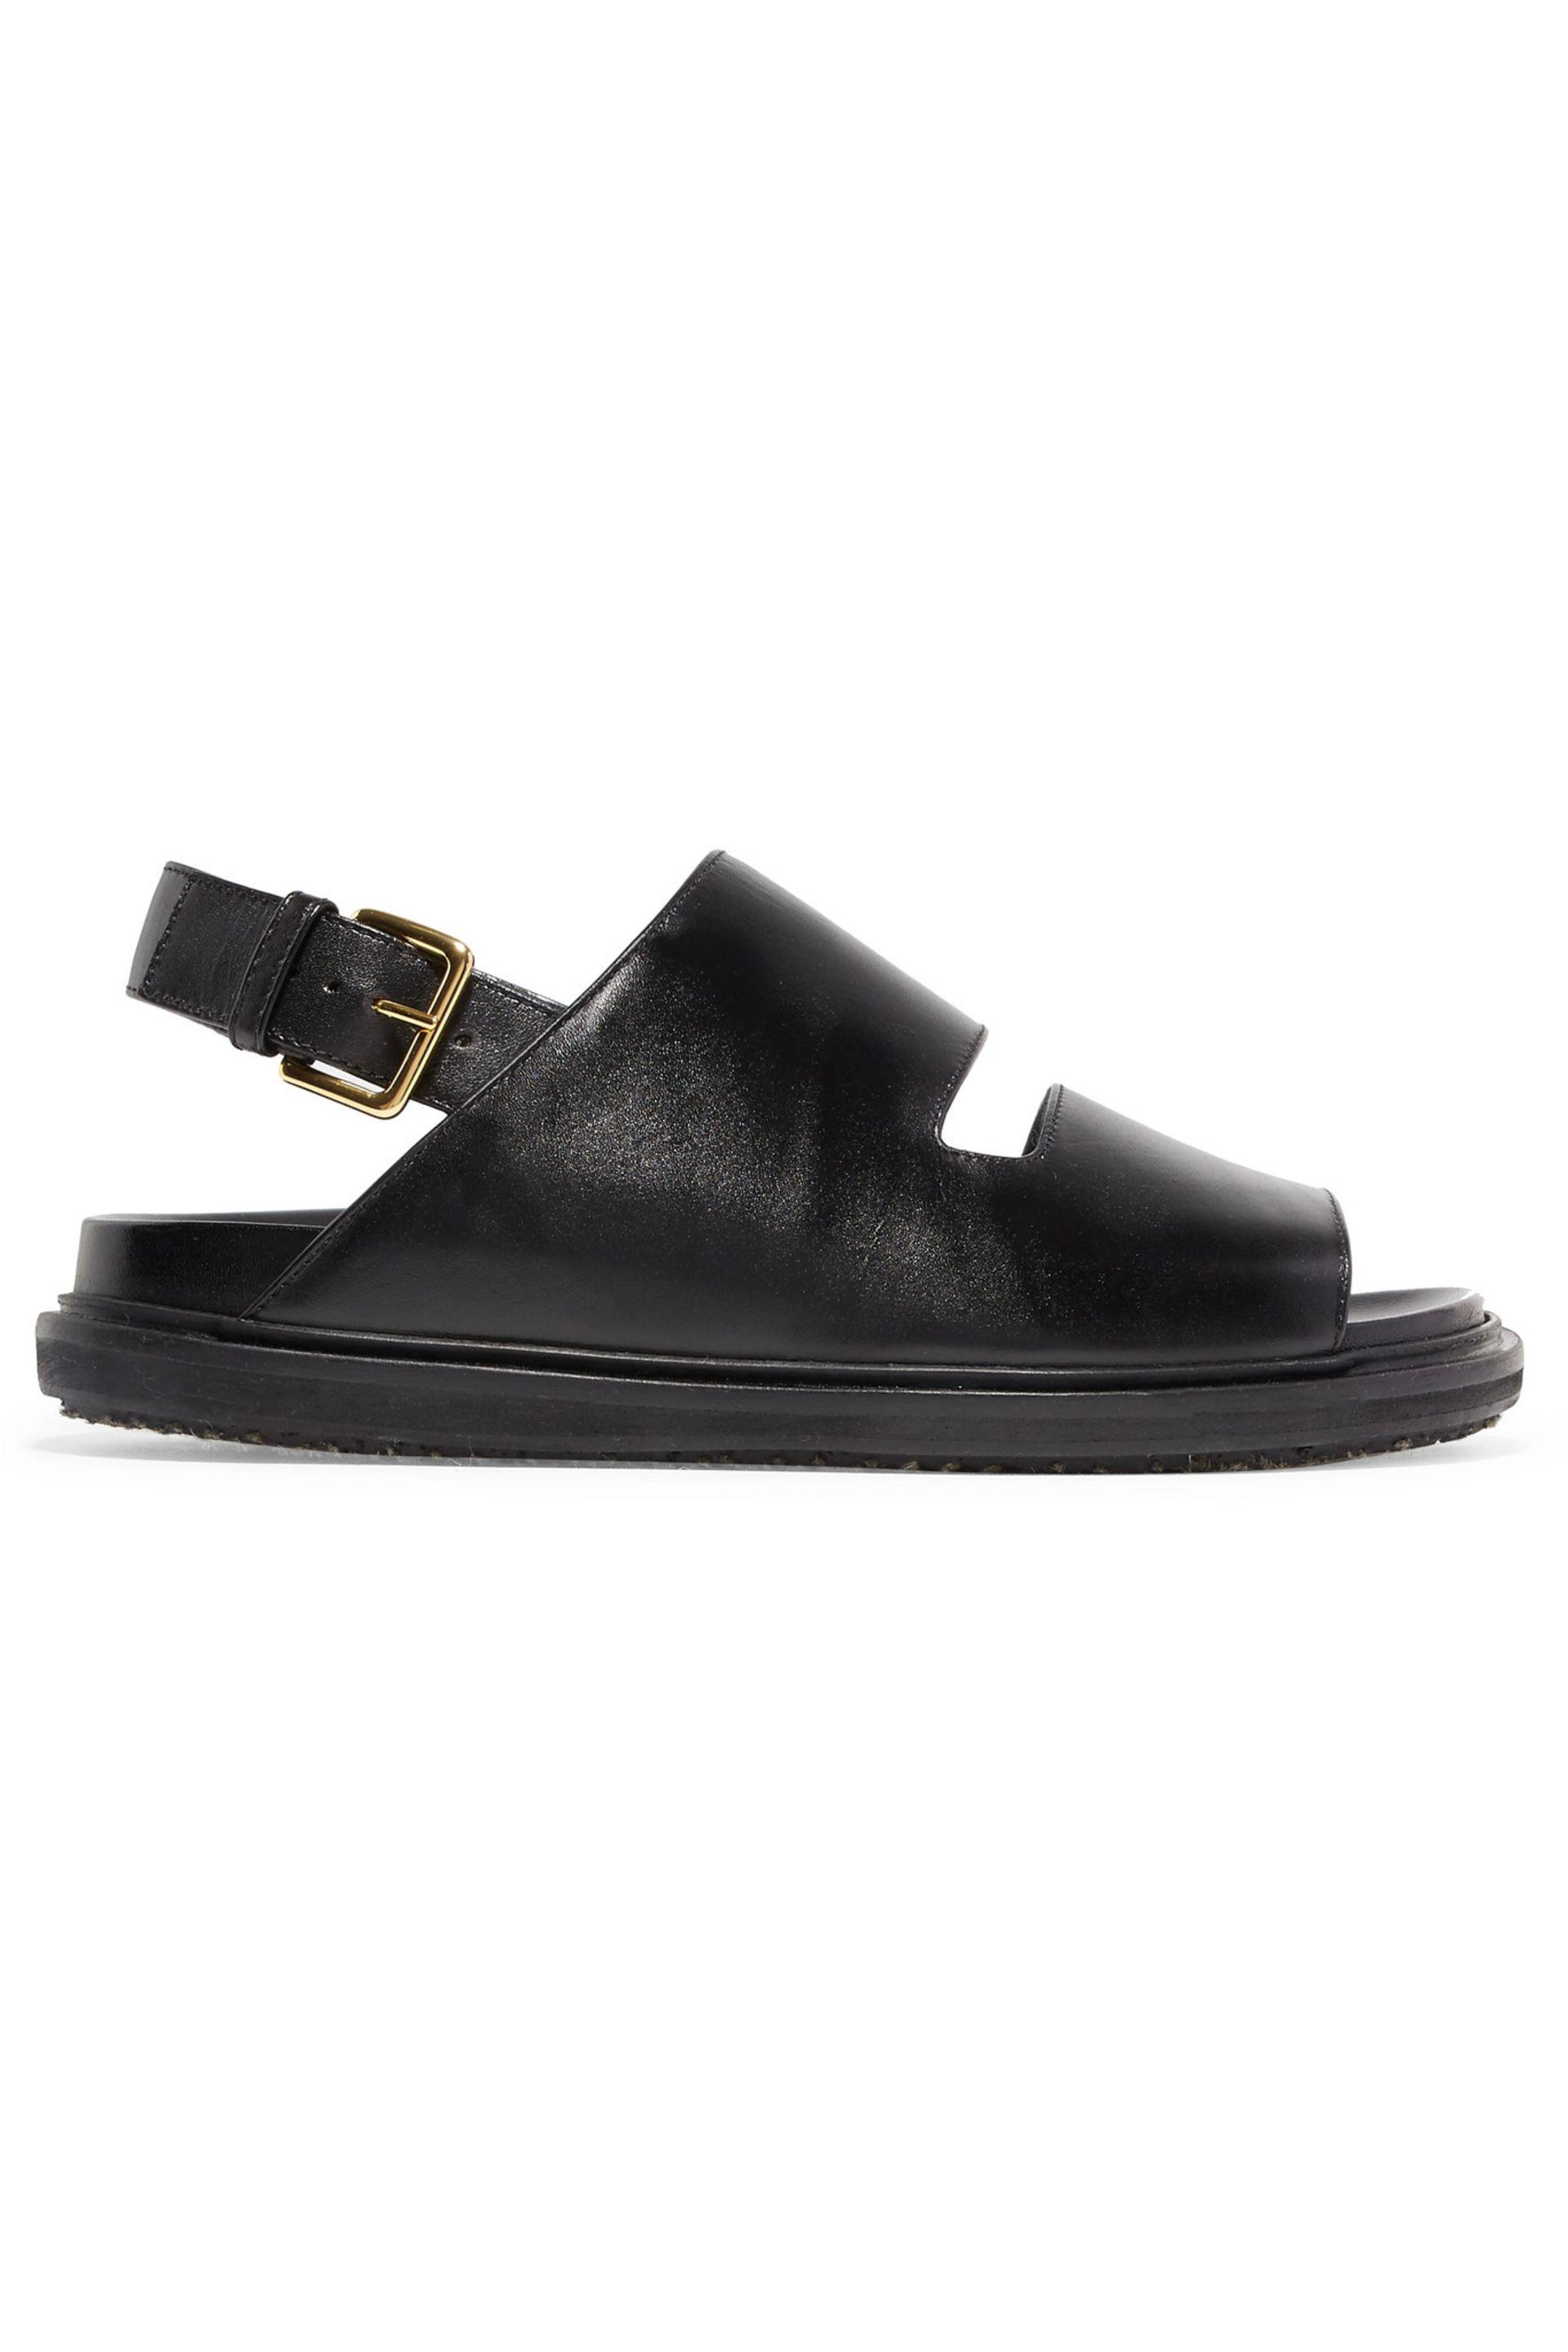 sneakernews sale online Marni Cutout Slingback Sandals perfect cheap price discount footlocker finishline limited edition cheap price JsMBm